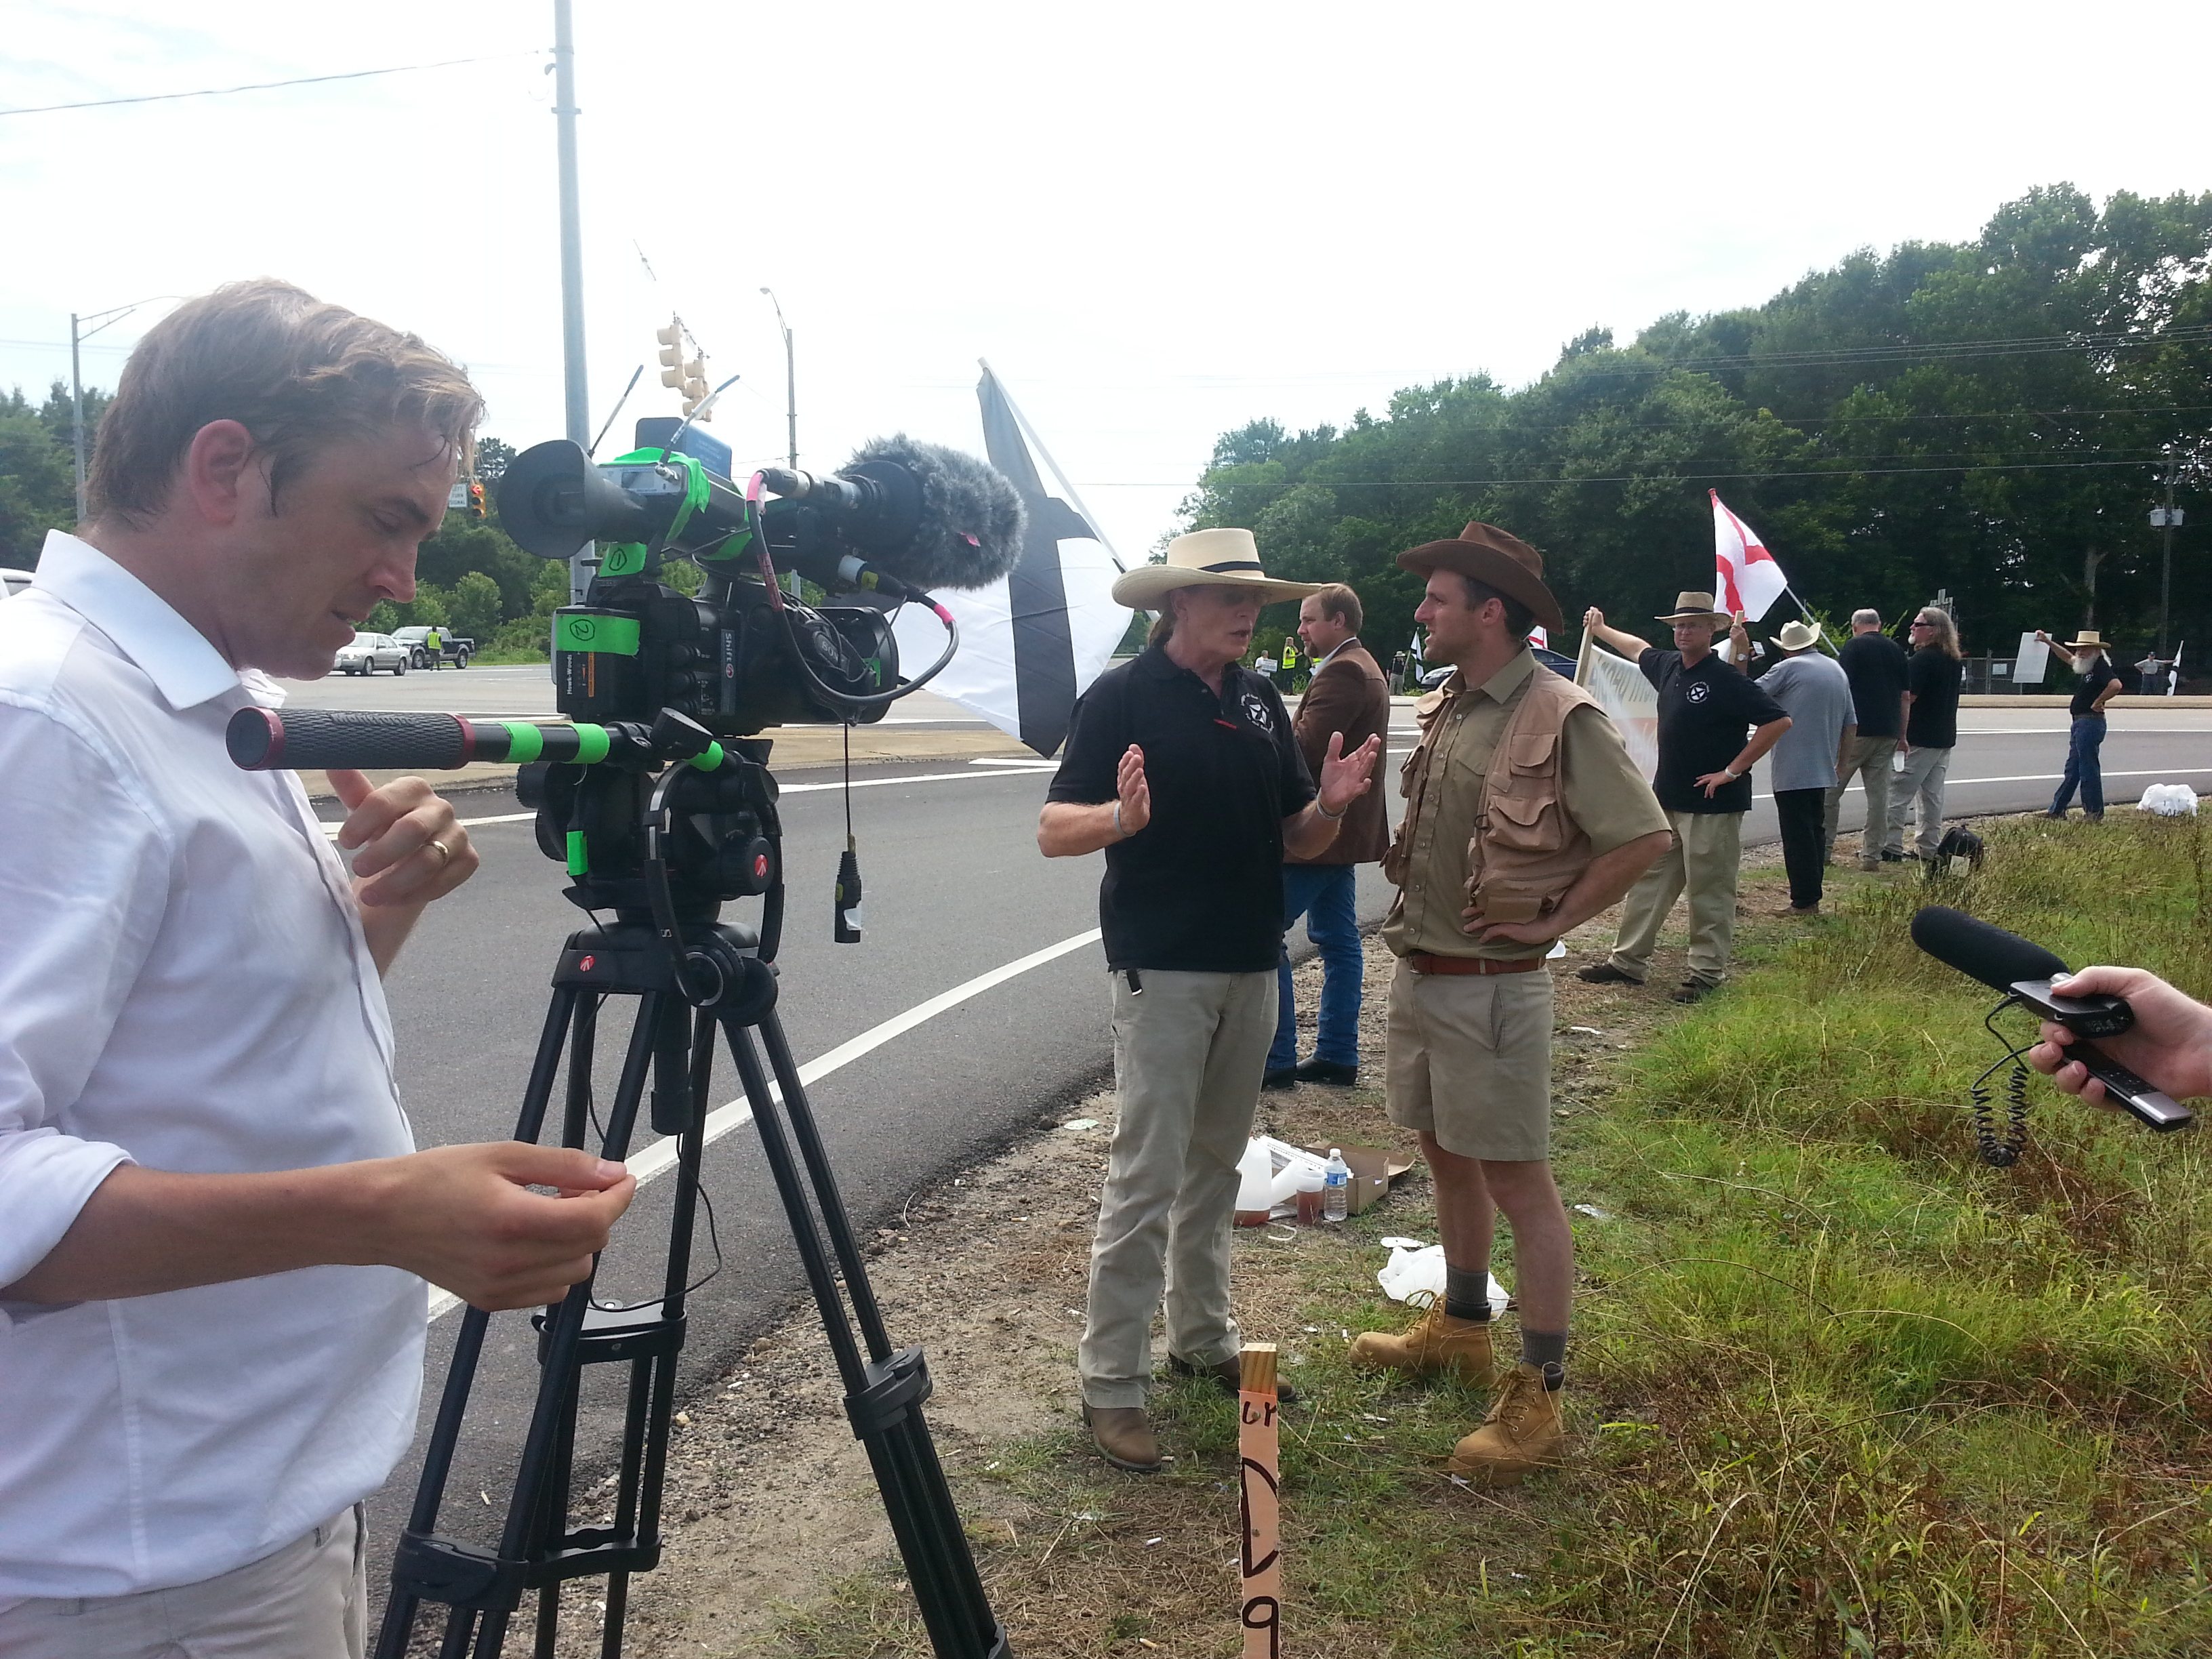 Southern Nationalism and The Media